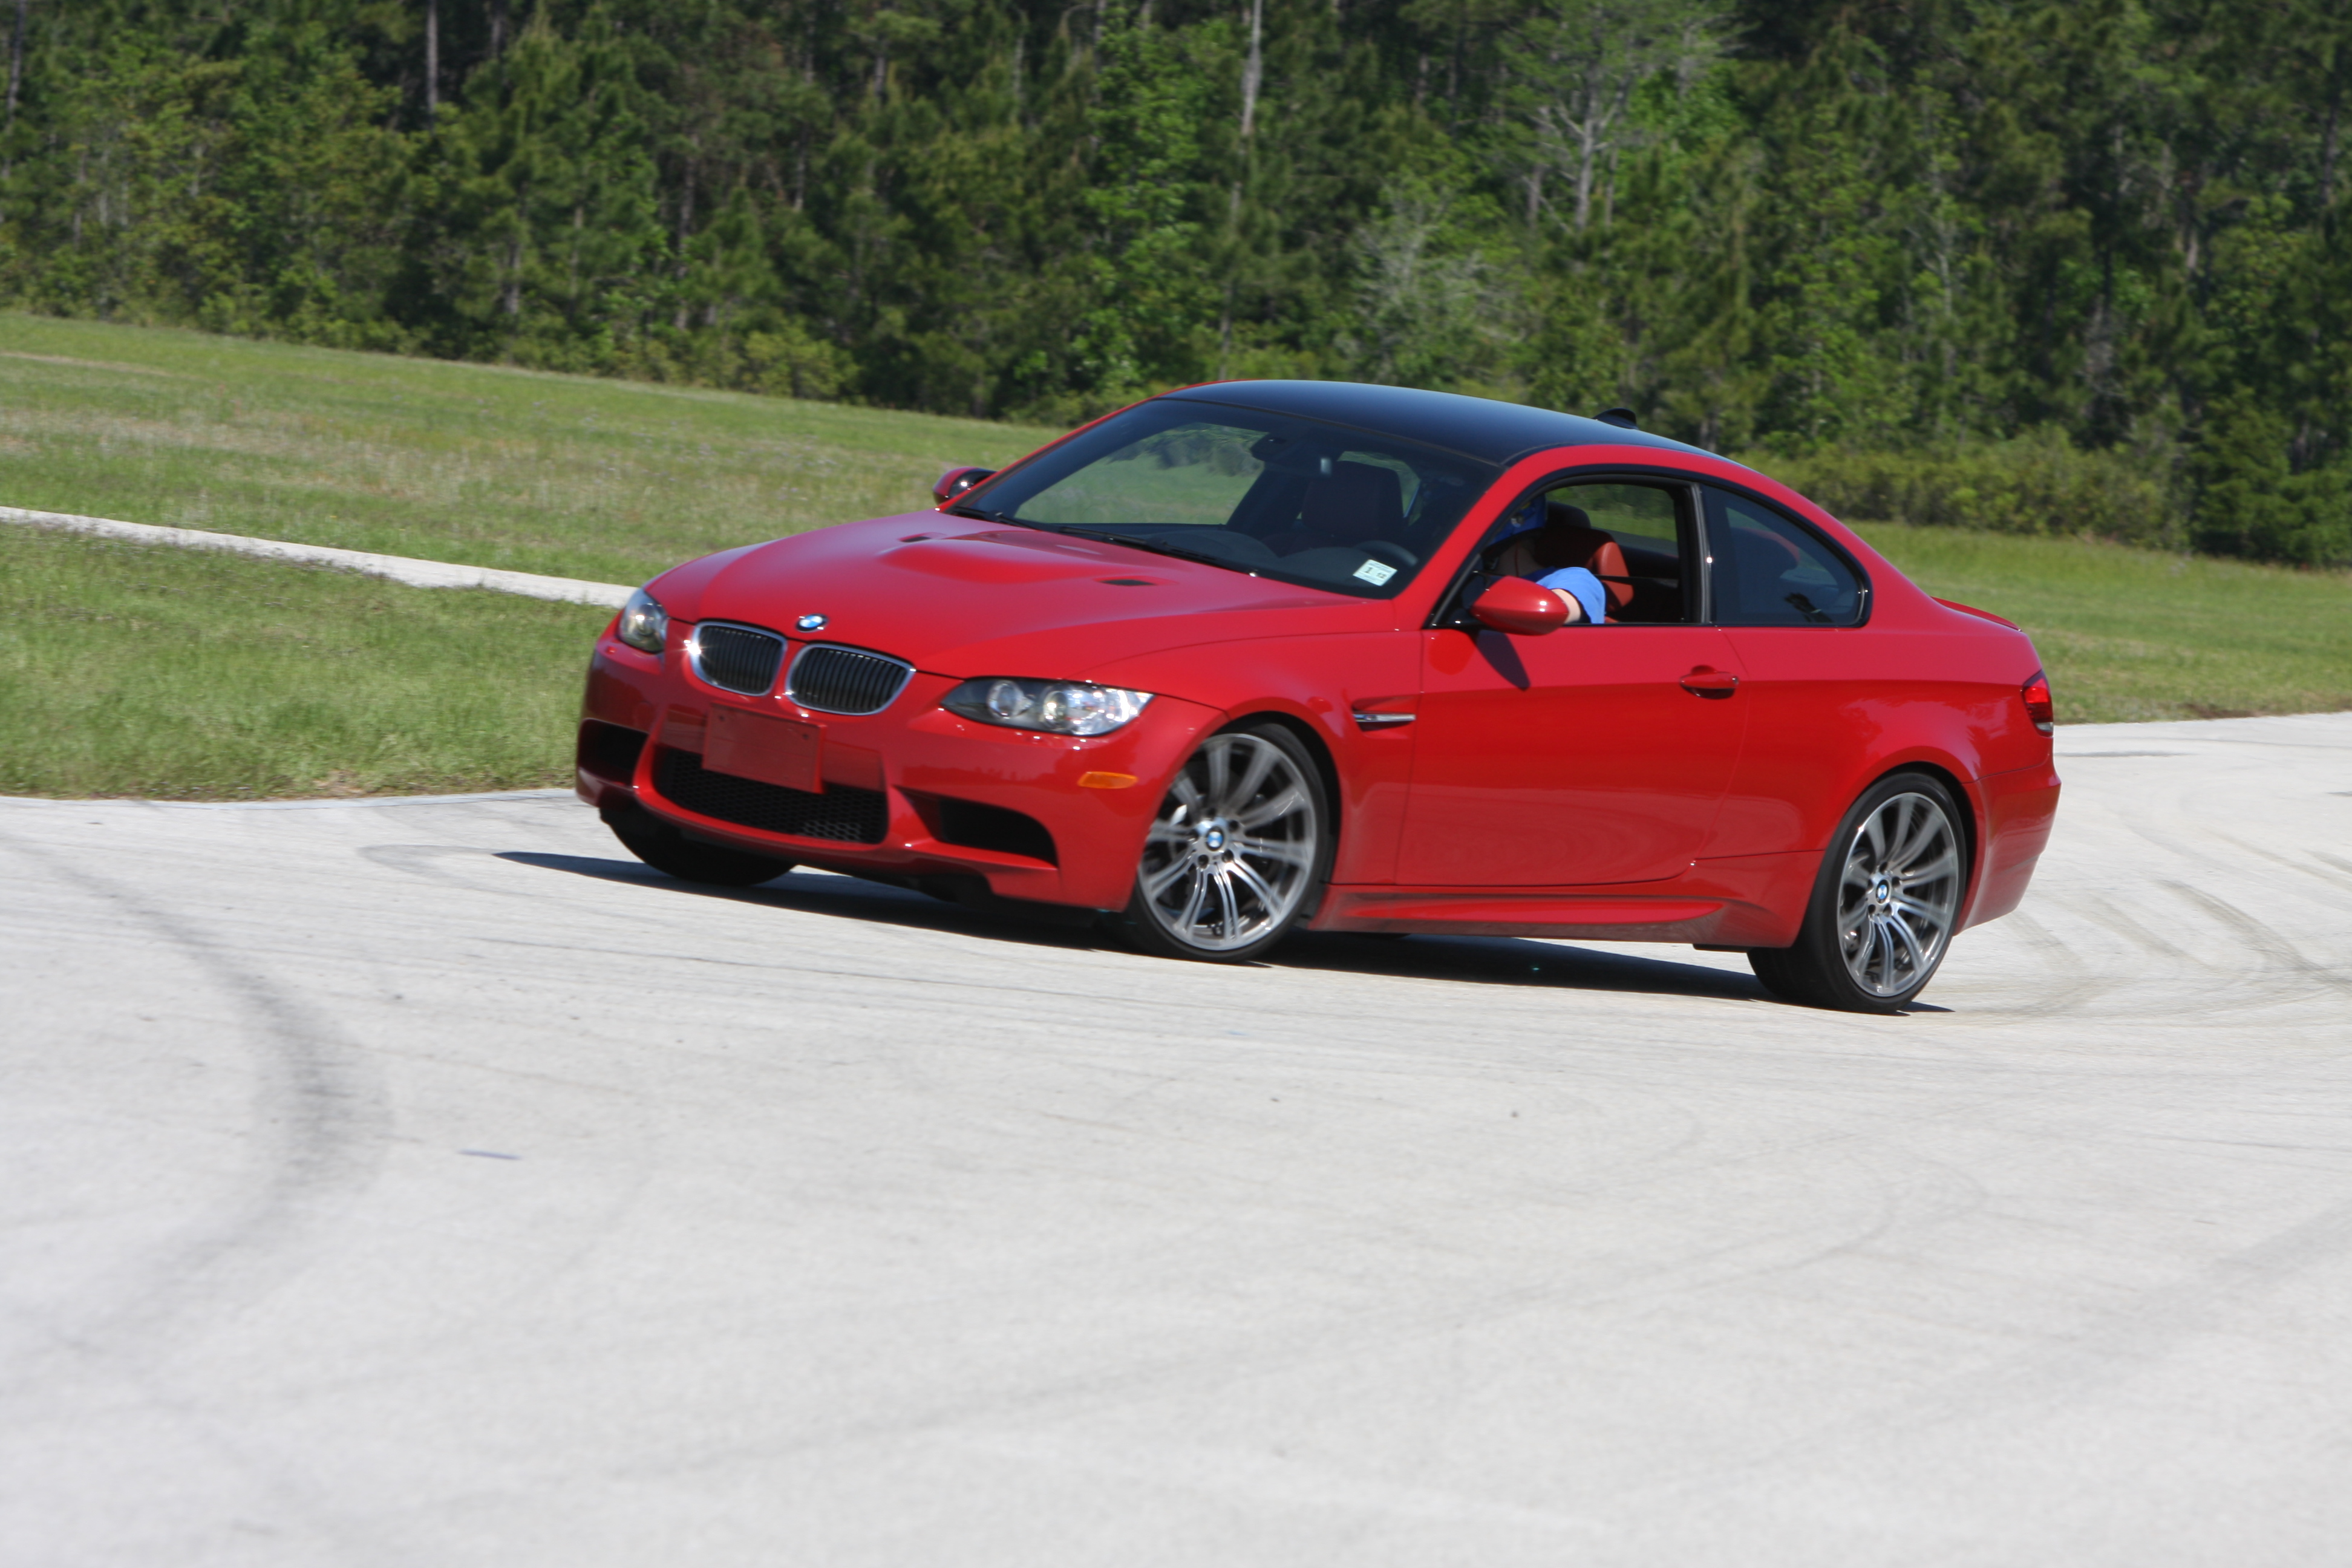 2008 BMW M3 Coupe and Sedan: New car reviews | Grassroots Motorsports